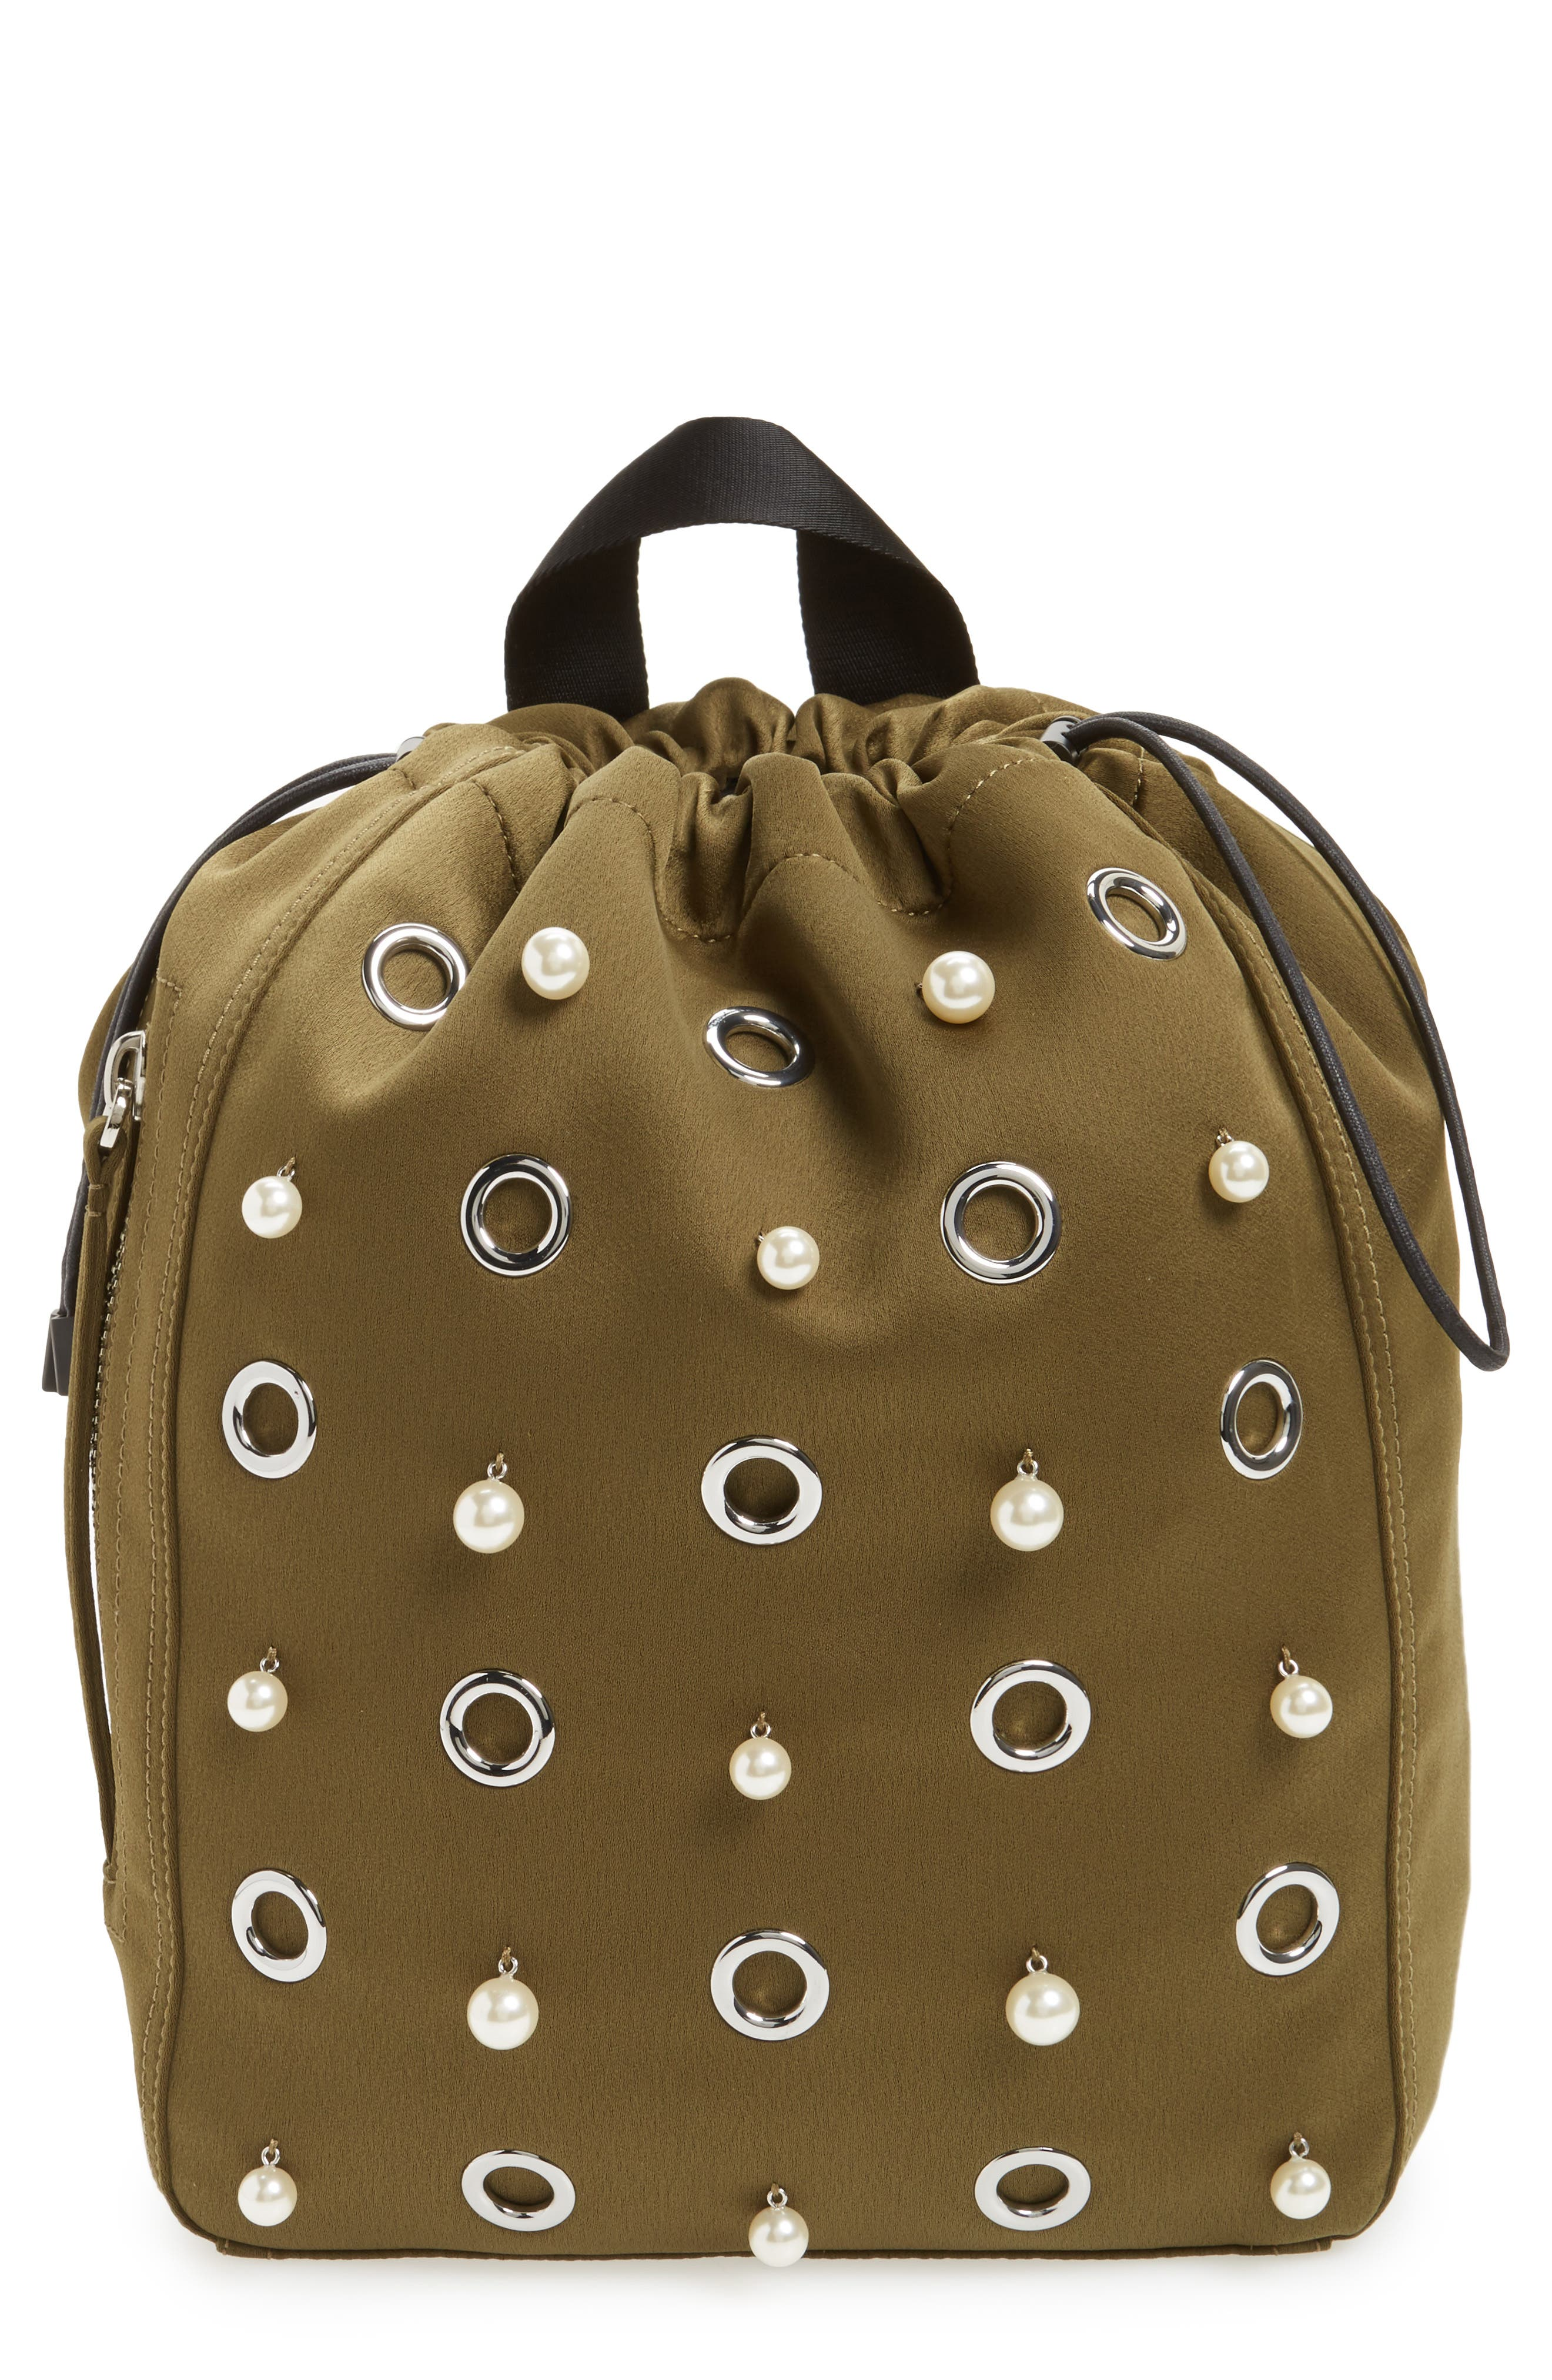 Phillip Lim 3.1 Medium Go-Go Embellished Backpack